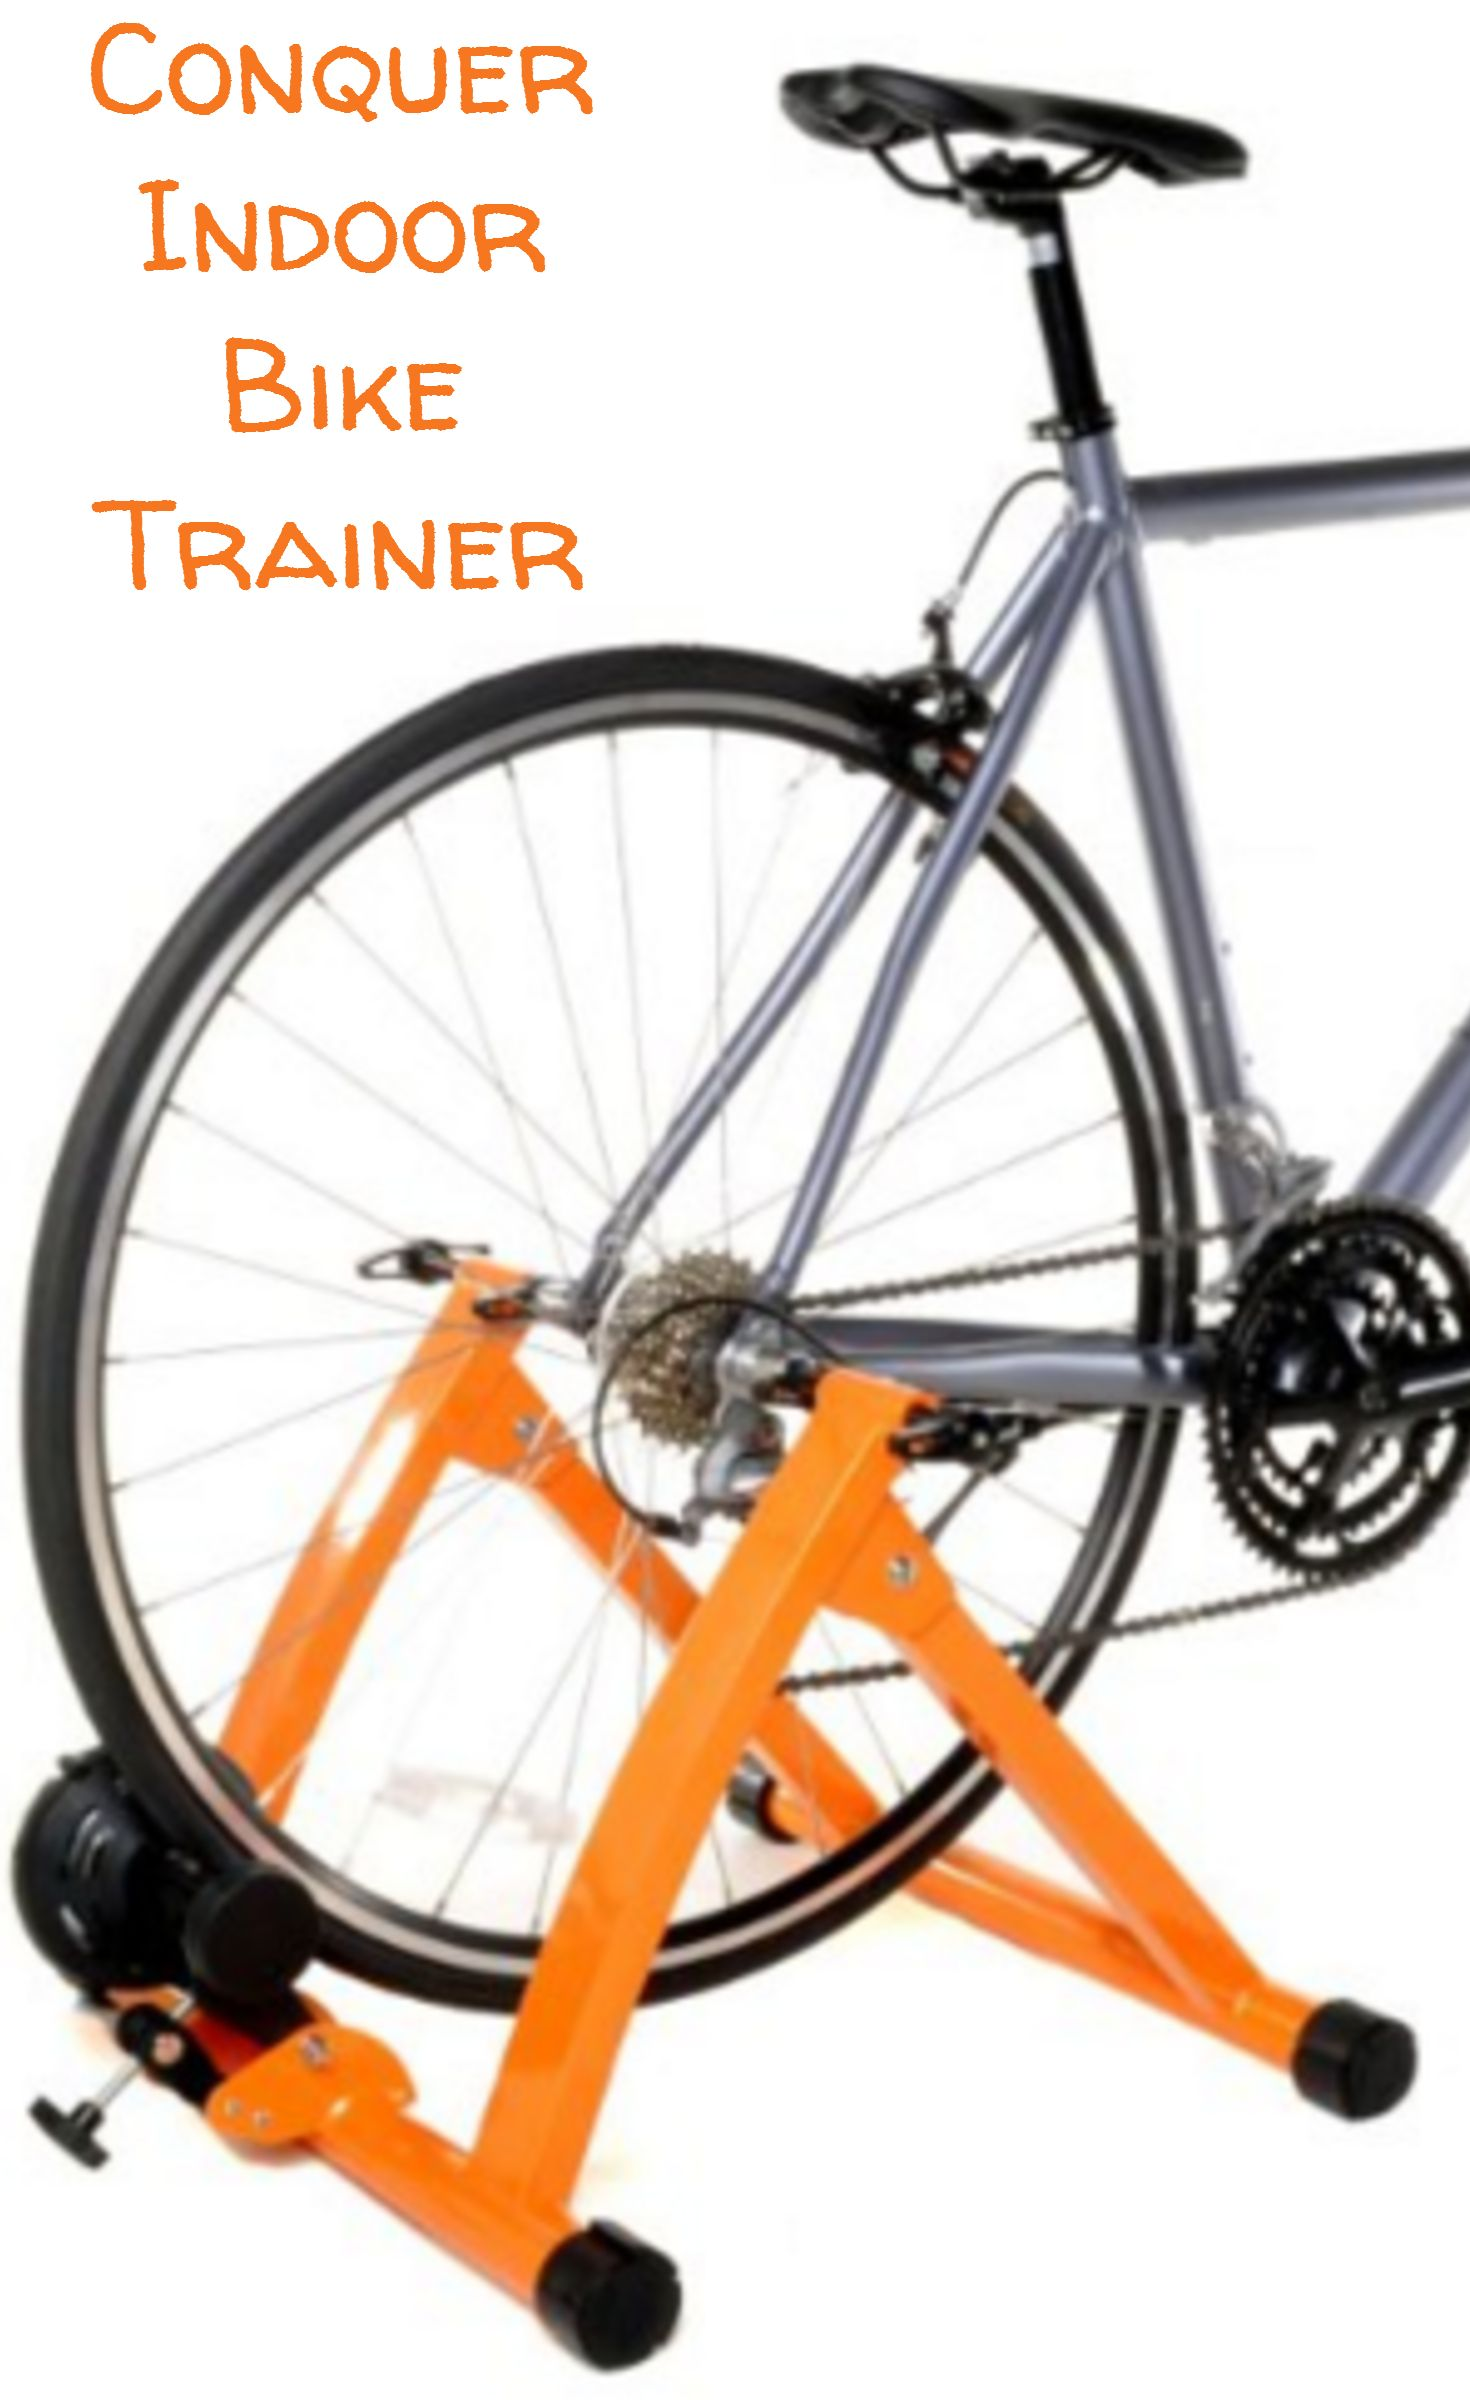 Contact support indoor bike bike trainer bicycle workout